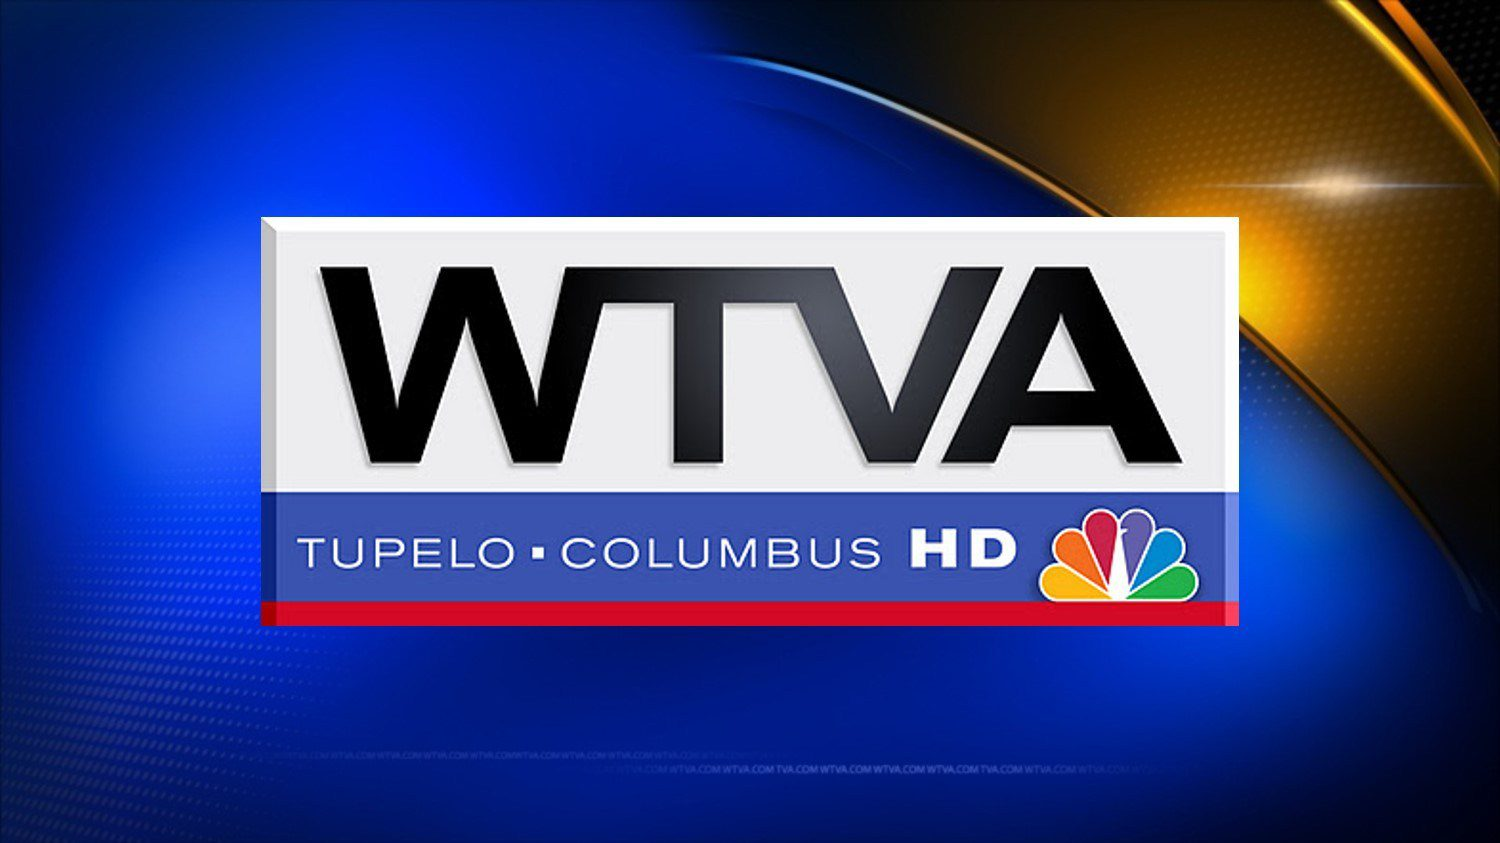 WTVA Logo who helped Brock and Credille with local advertising.